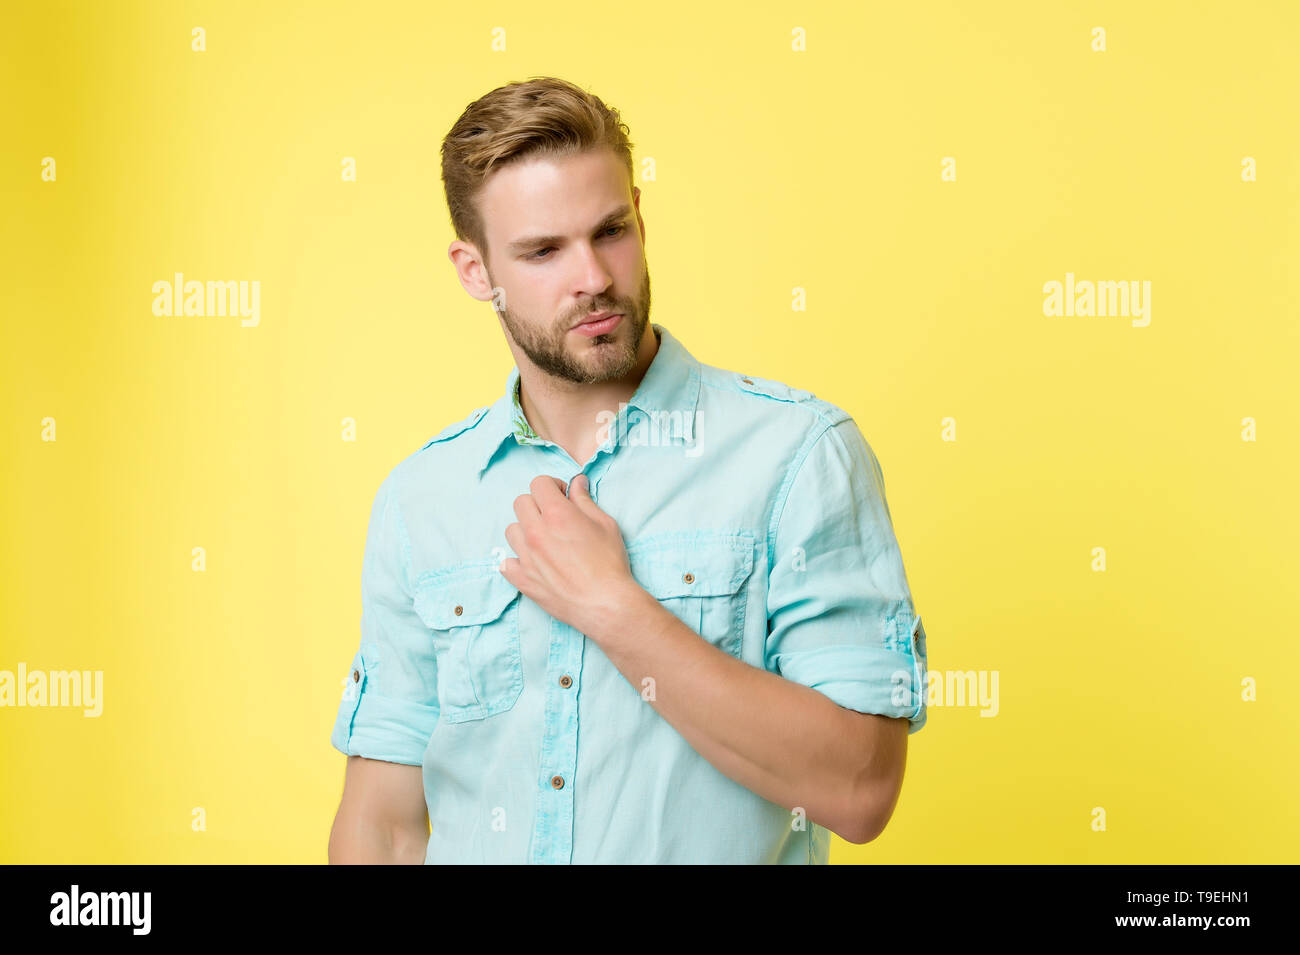 Man looks attractive casual linen blue shirt. Guy bristle undress casual shirt. Fashion concept. Man calm serious face confidently unbuttoning shirts  - Stock Image